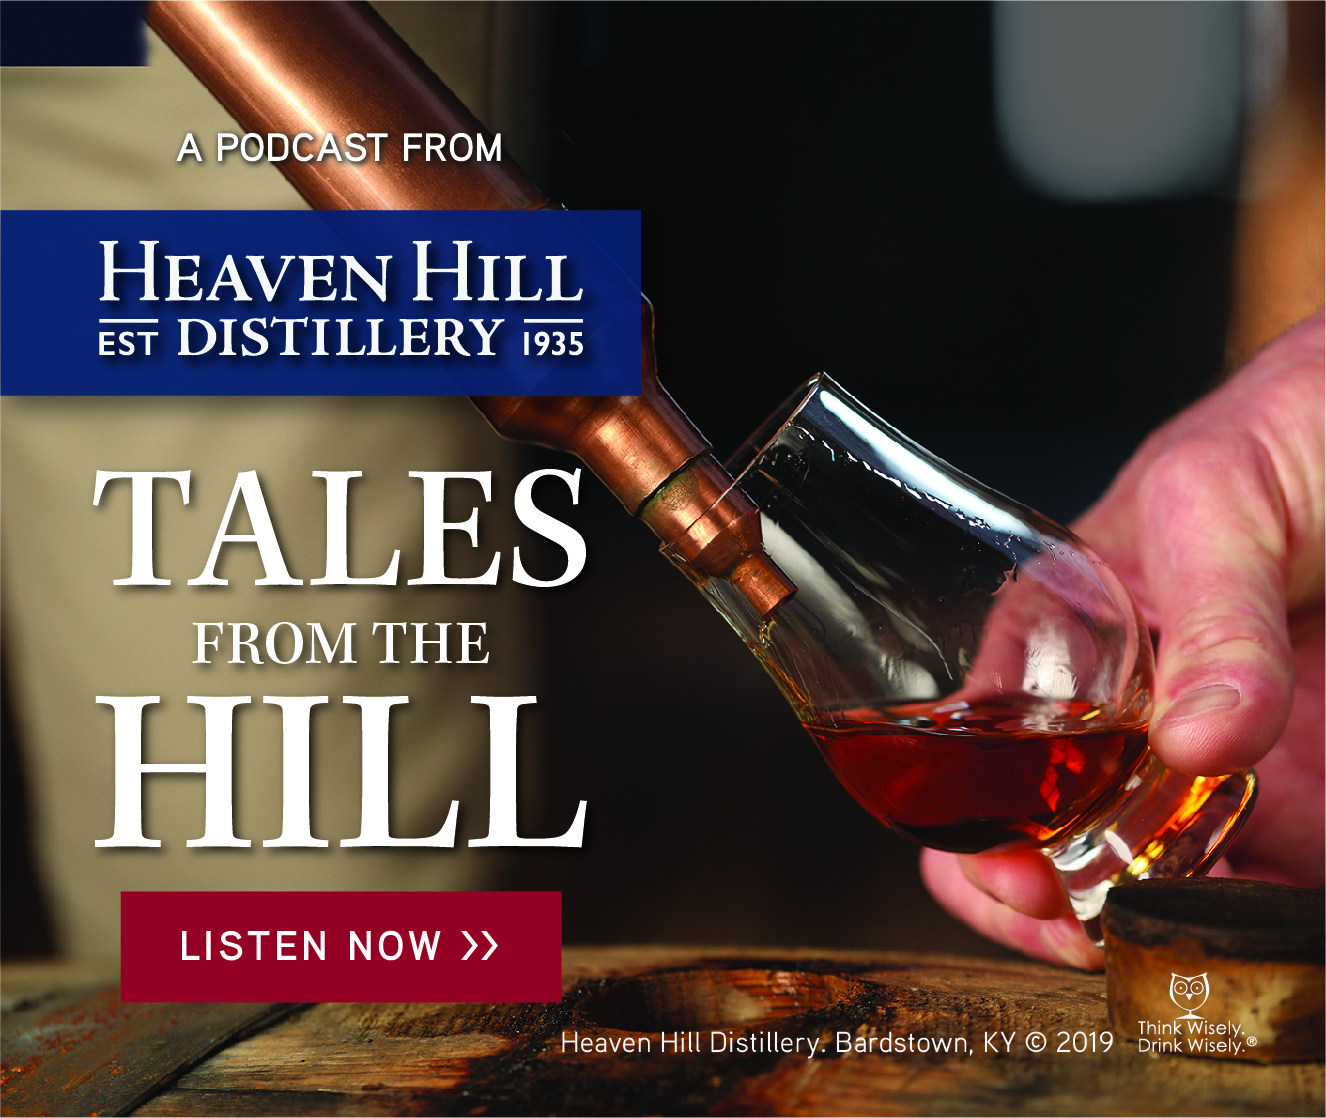 Listen to Tales from the Hill, Heaven Hill's podcast!